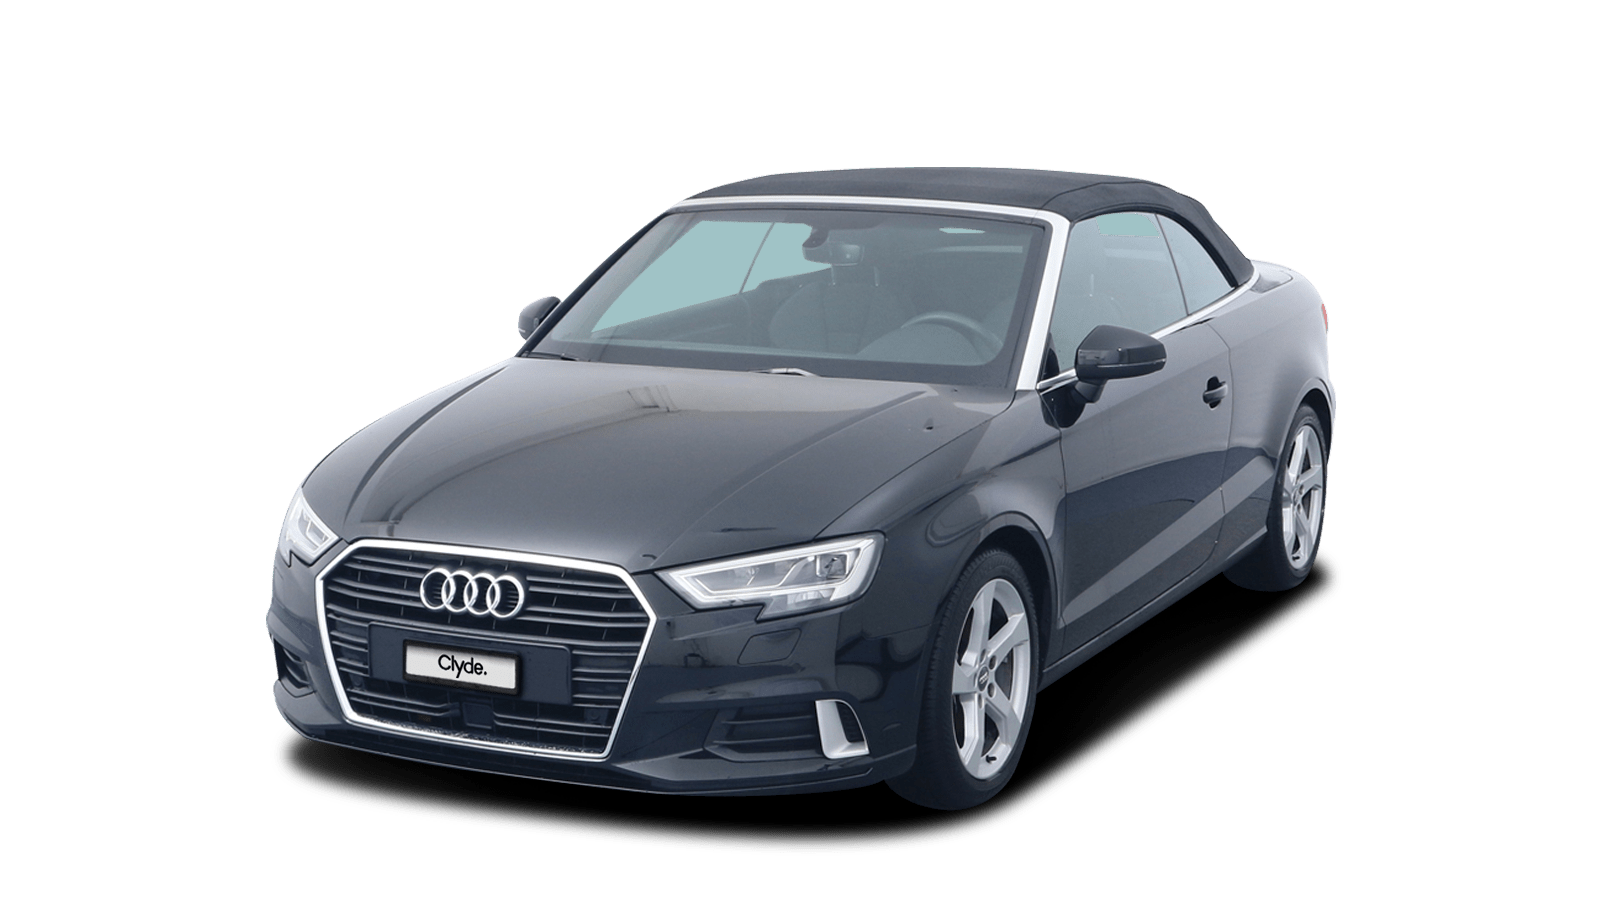 Audi A3 Cabriolet Schwarz front - Clyde Auto-Abo